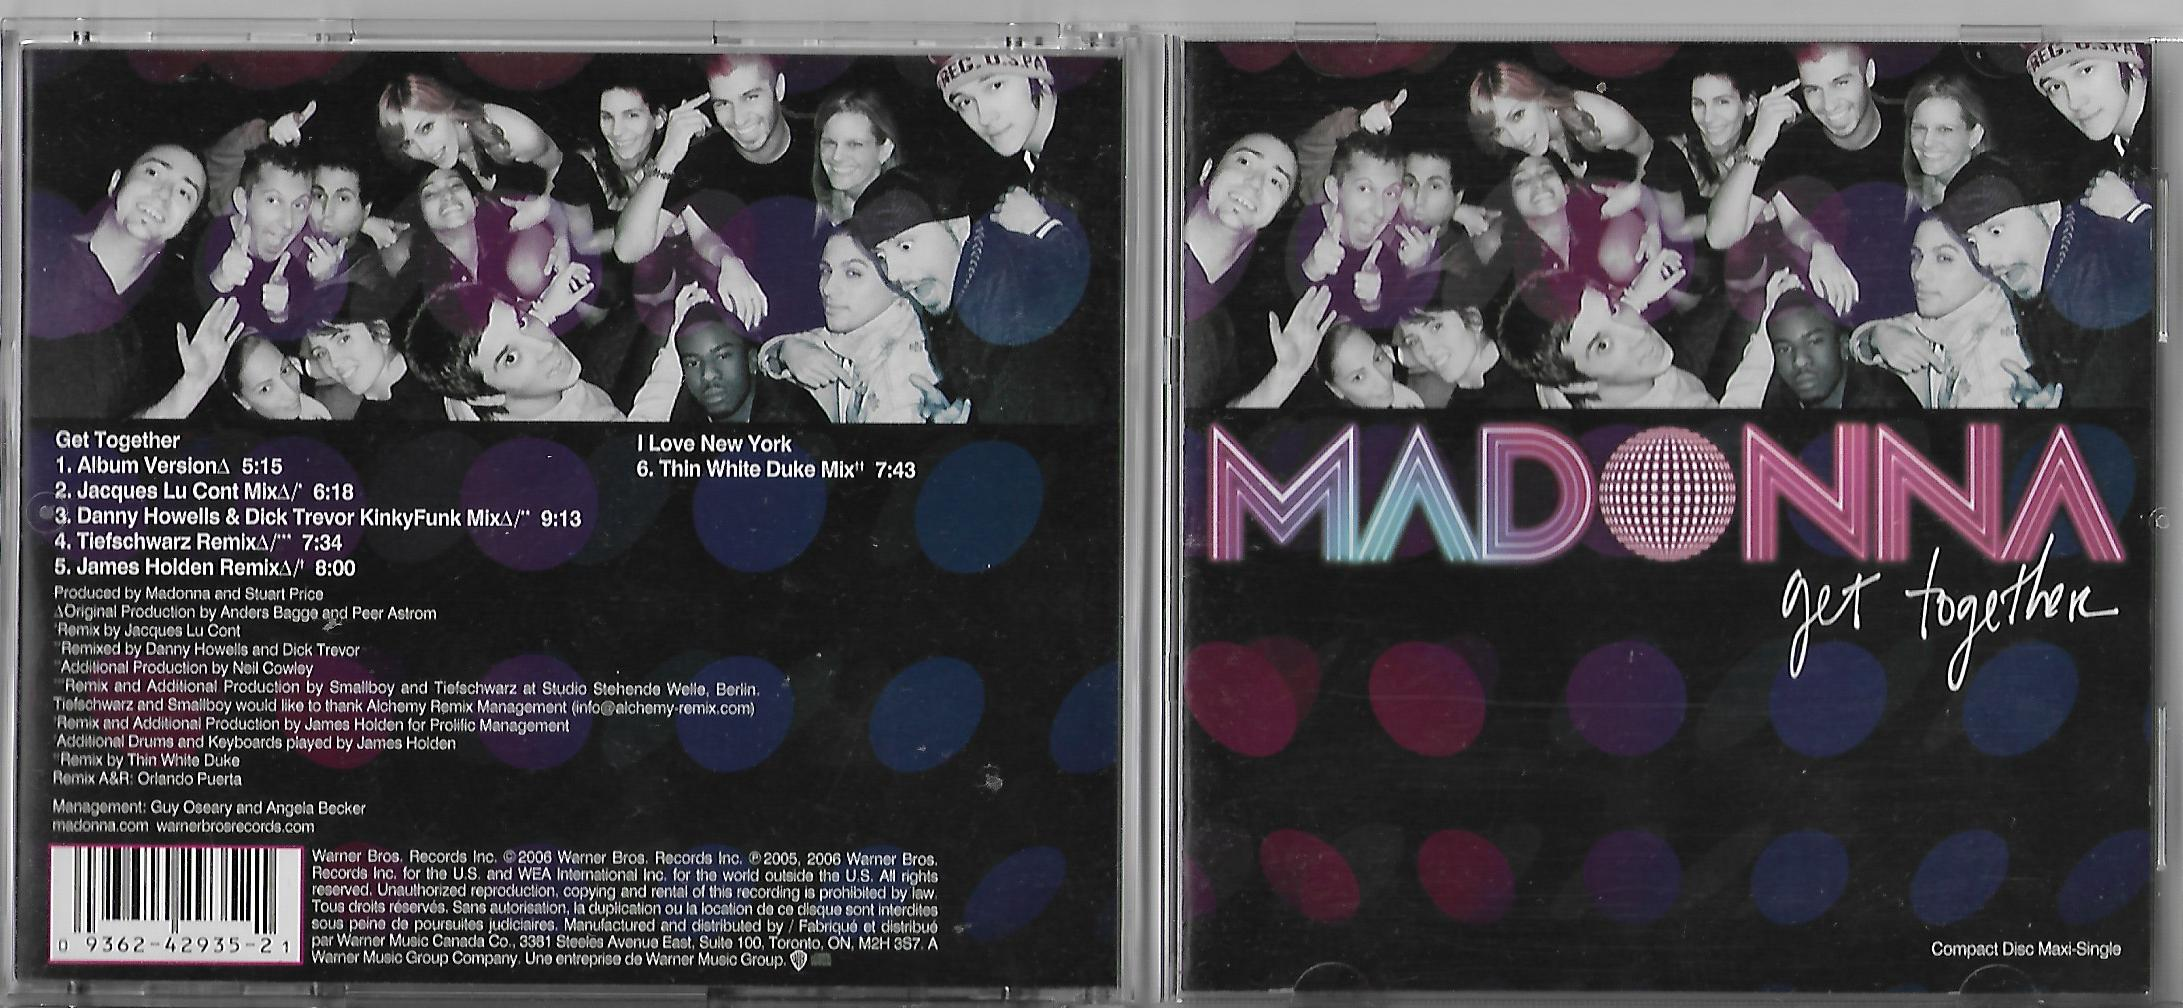 MADONNA - Get Together 6-track Jewel Case